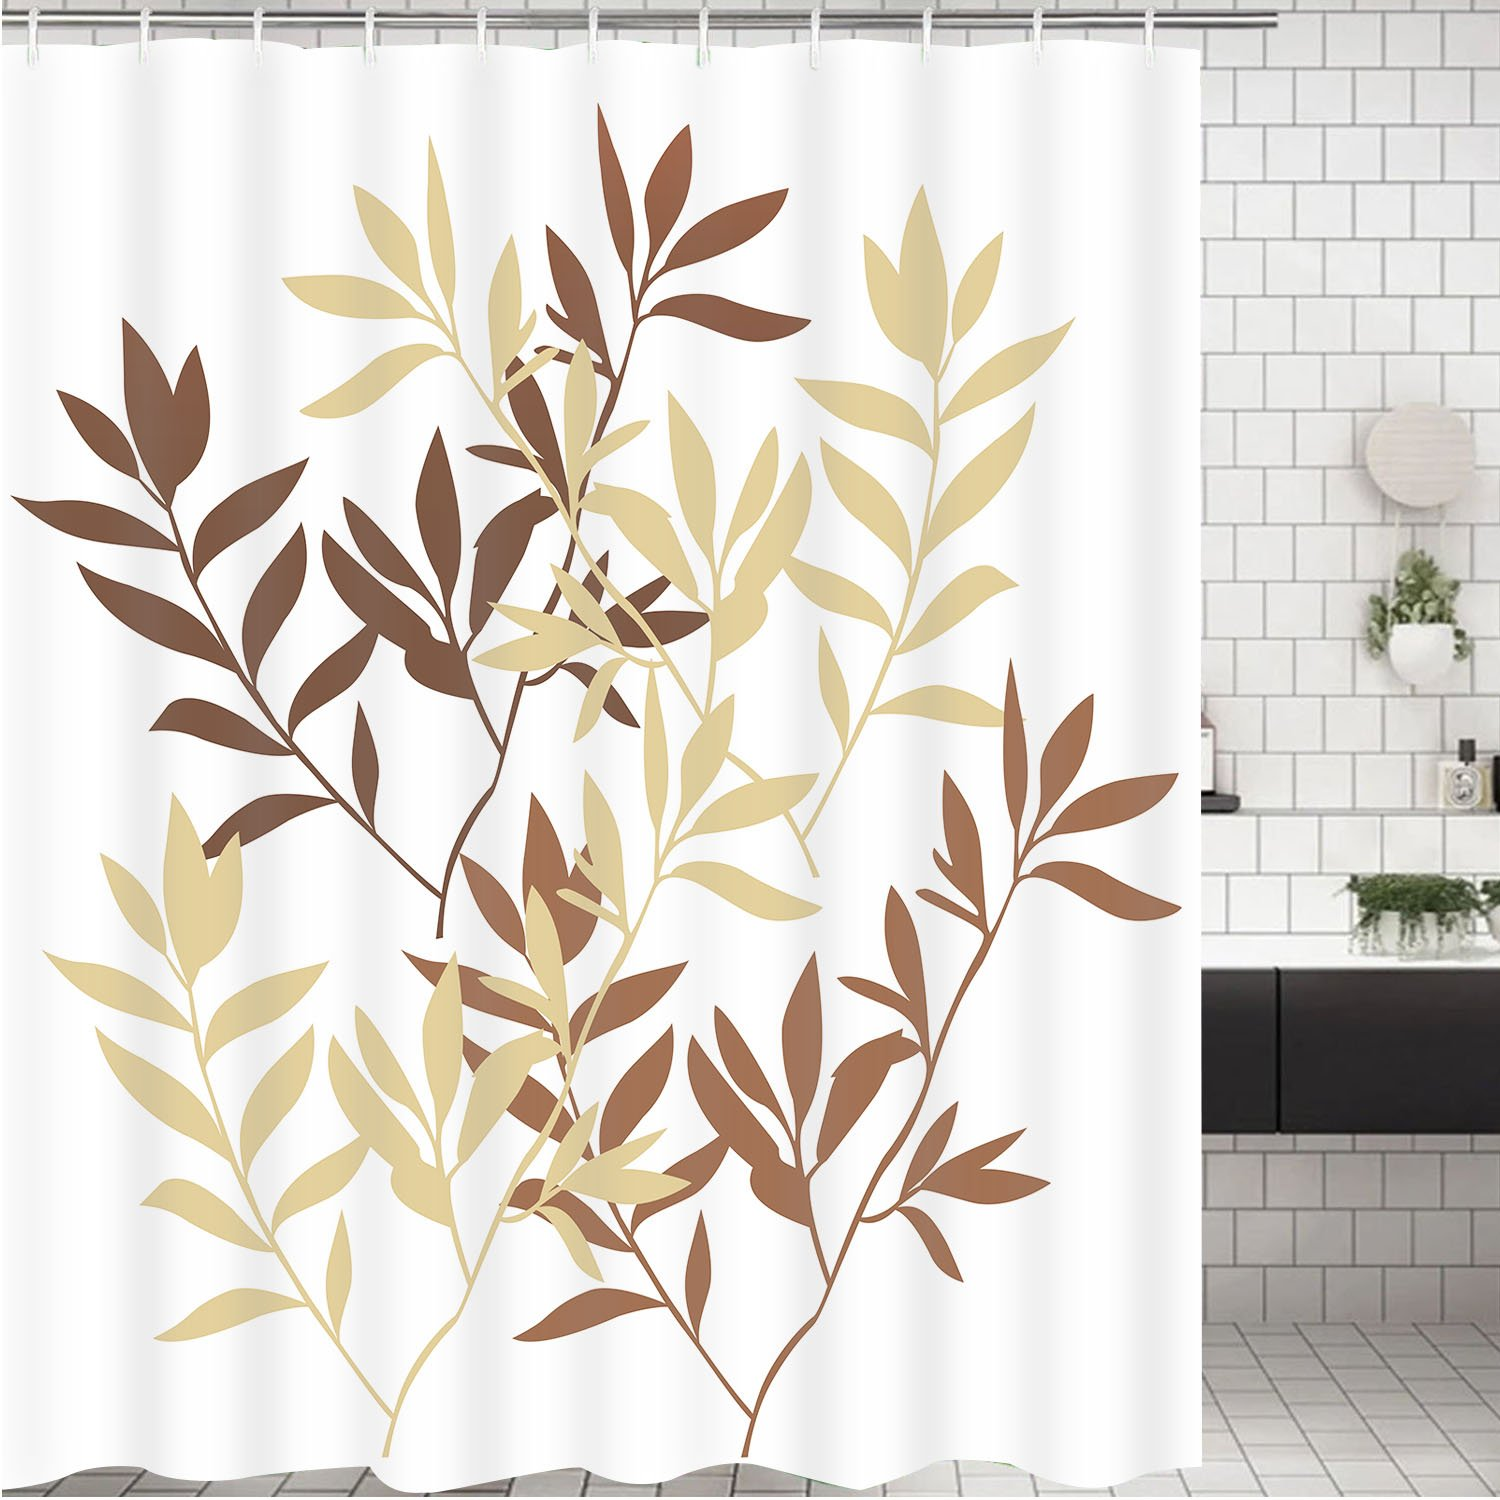 Leaves Shower Curtain Bathroom Shower Curtain Bathroom Curtain Durable Oxford Fabric Bath Curtain Bathroom Accessories Ideas Kitchen Window Curtain with 12 Hooks